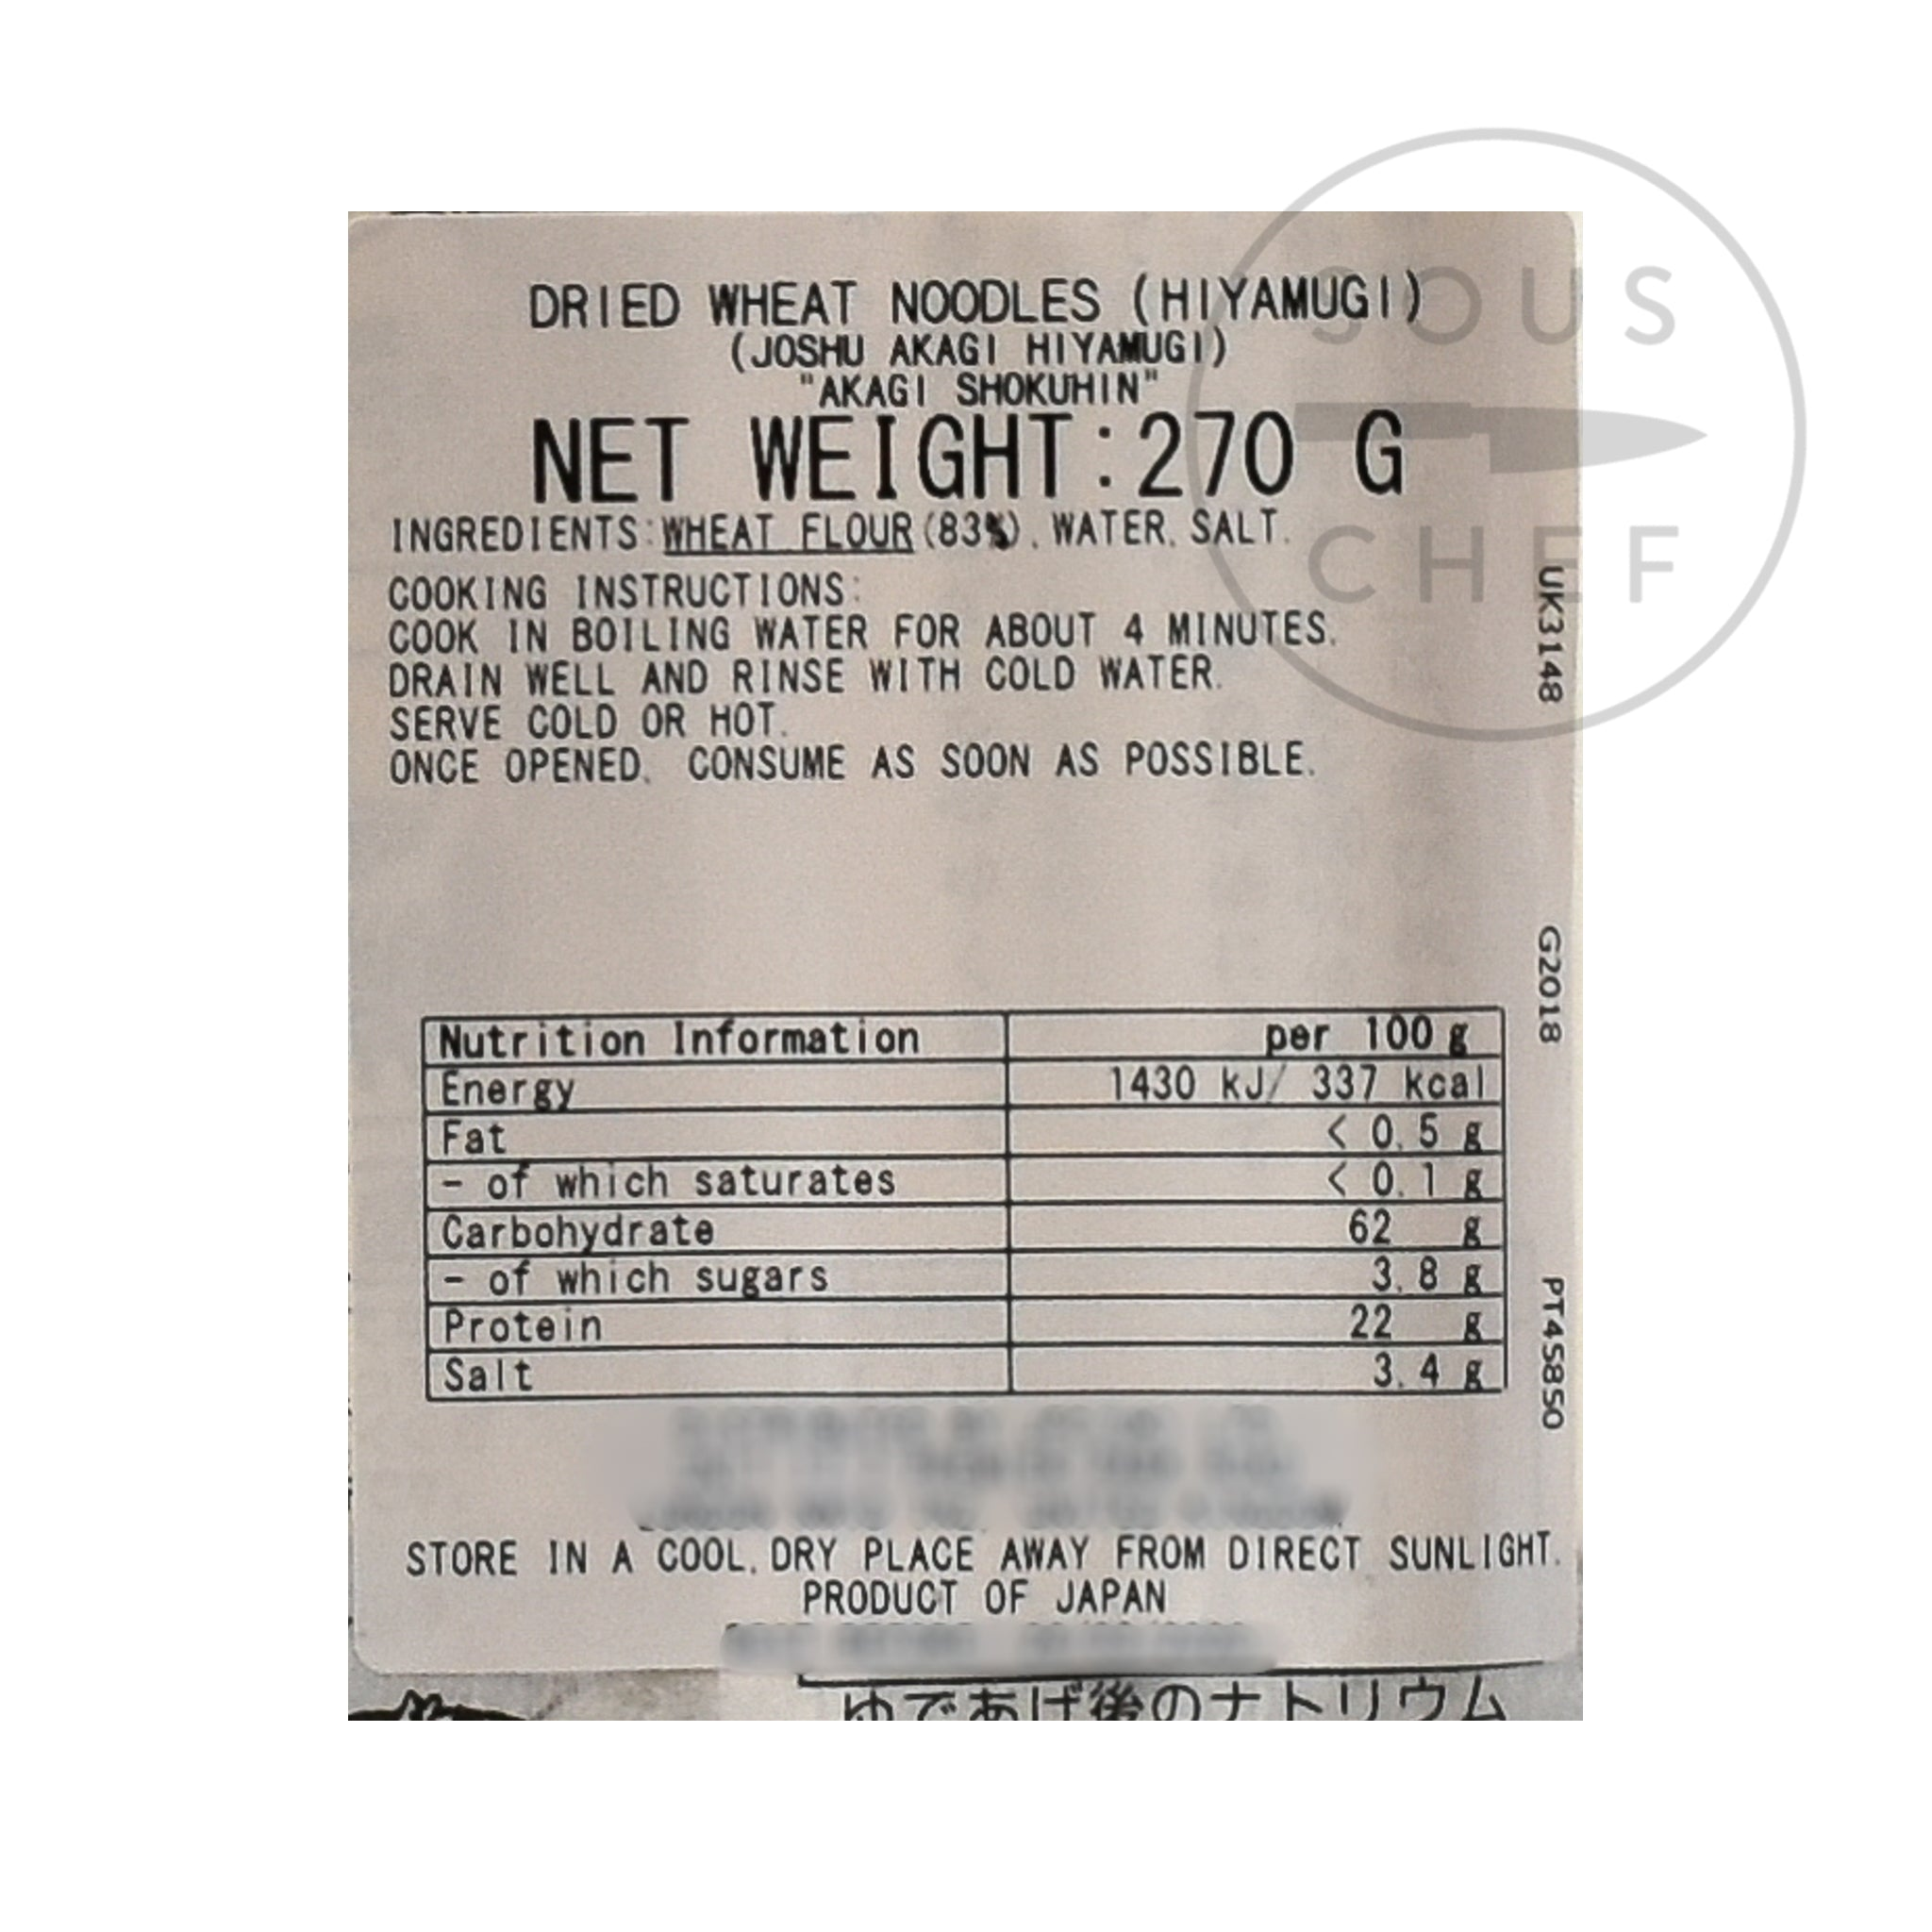 Akagi Dried Hiyamugi Noodles 270g nutritional information ingredients